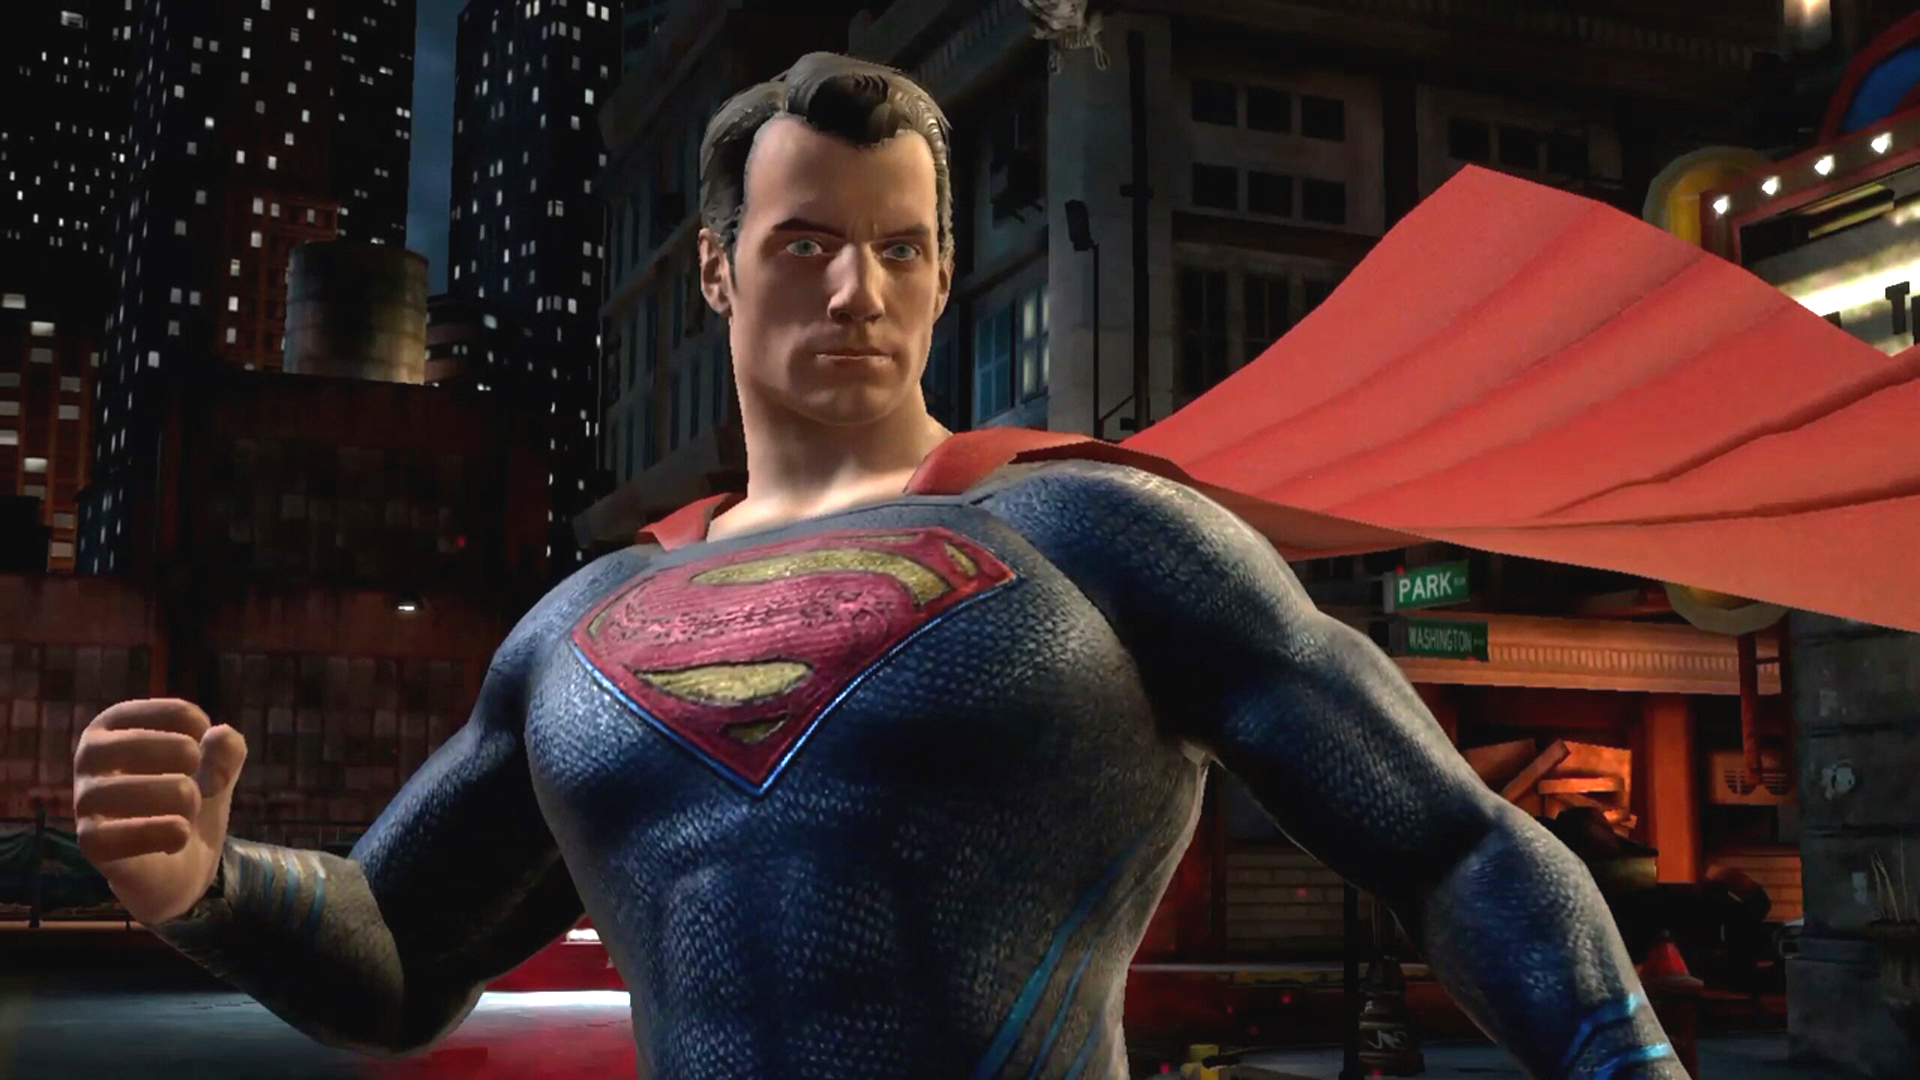 Gotham Knights dev's next game may be a new IP, not Superman